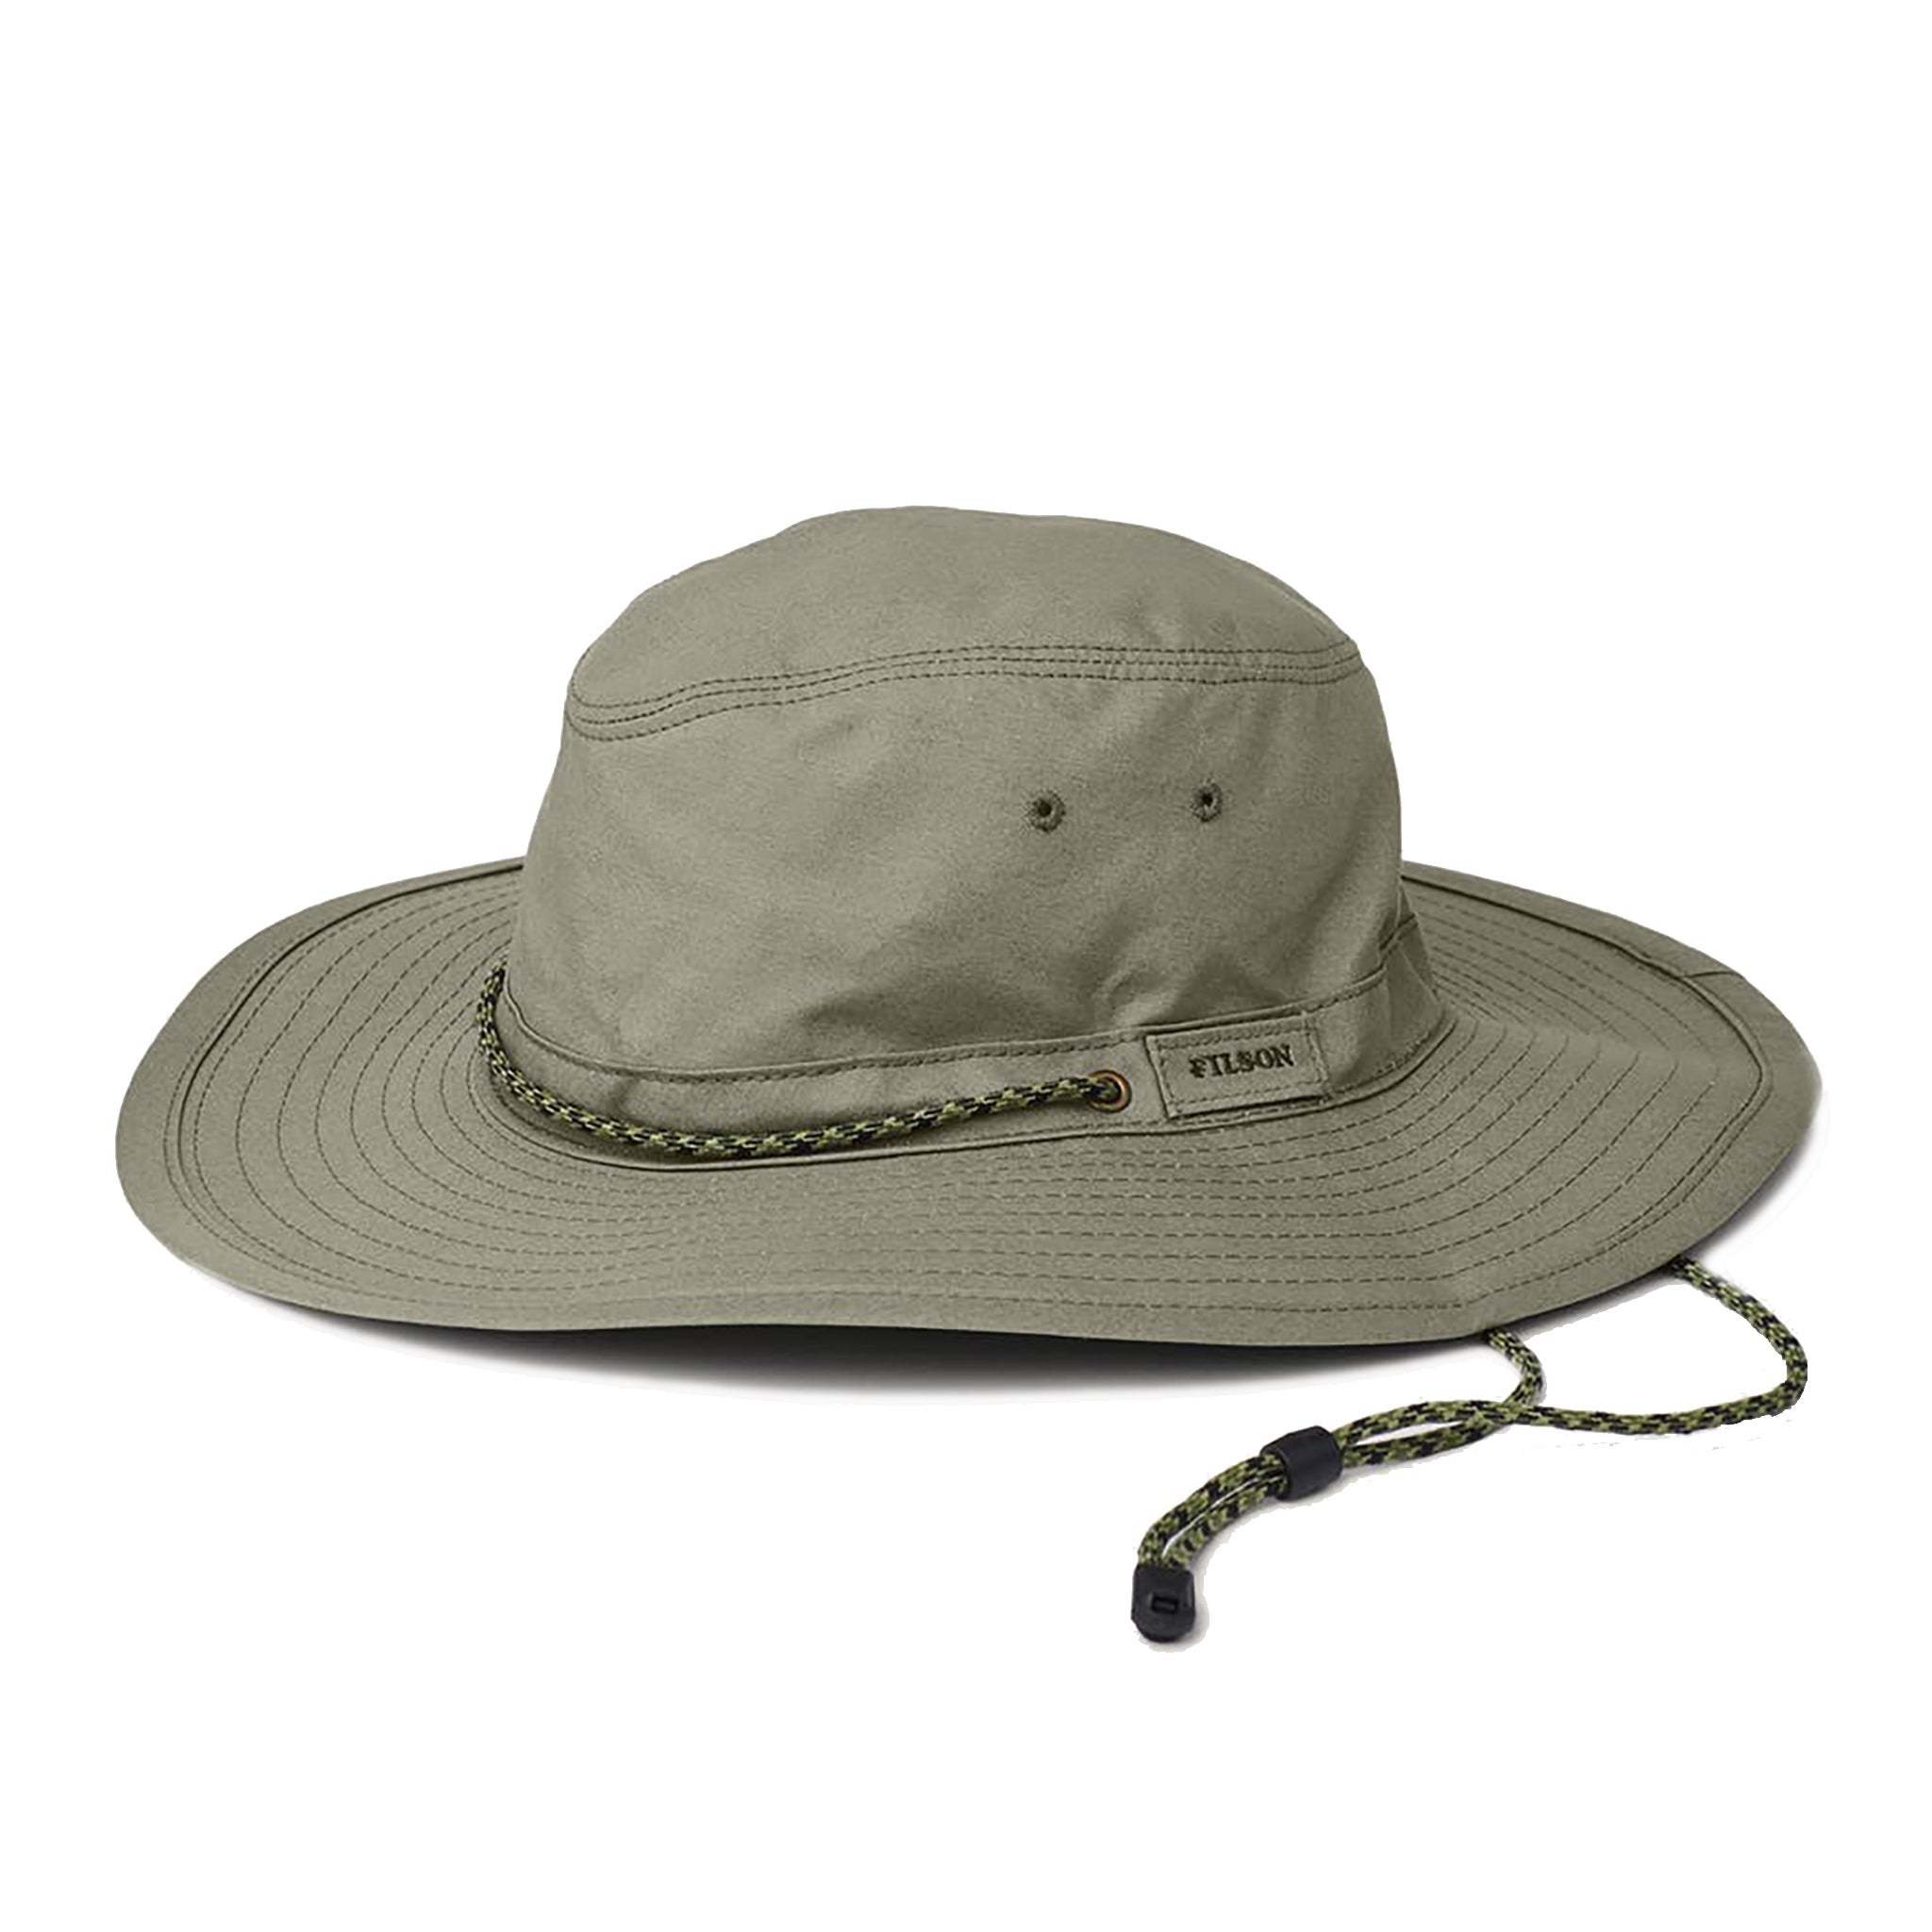 Twin Falls Travel Hat